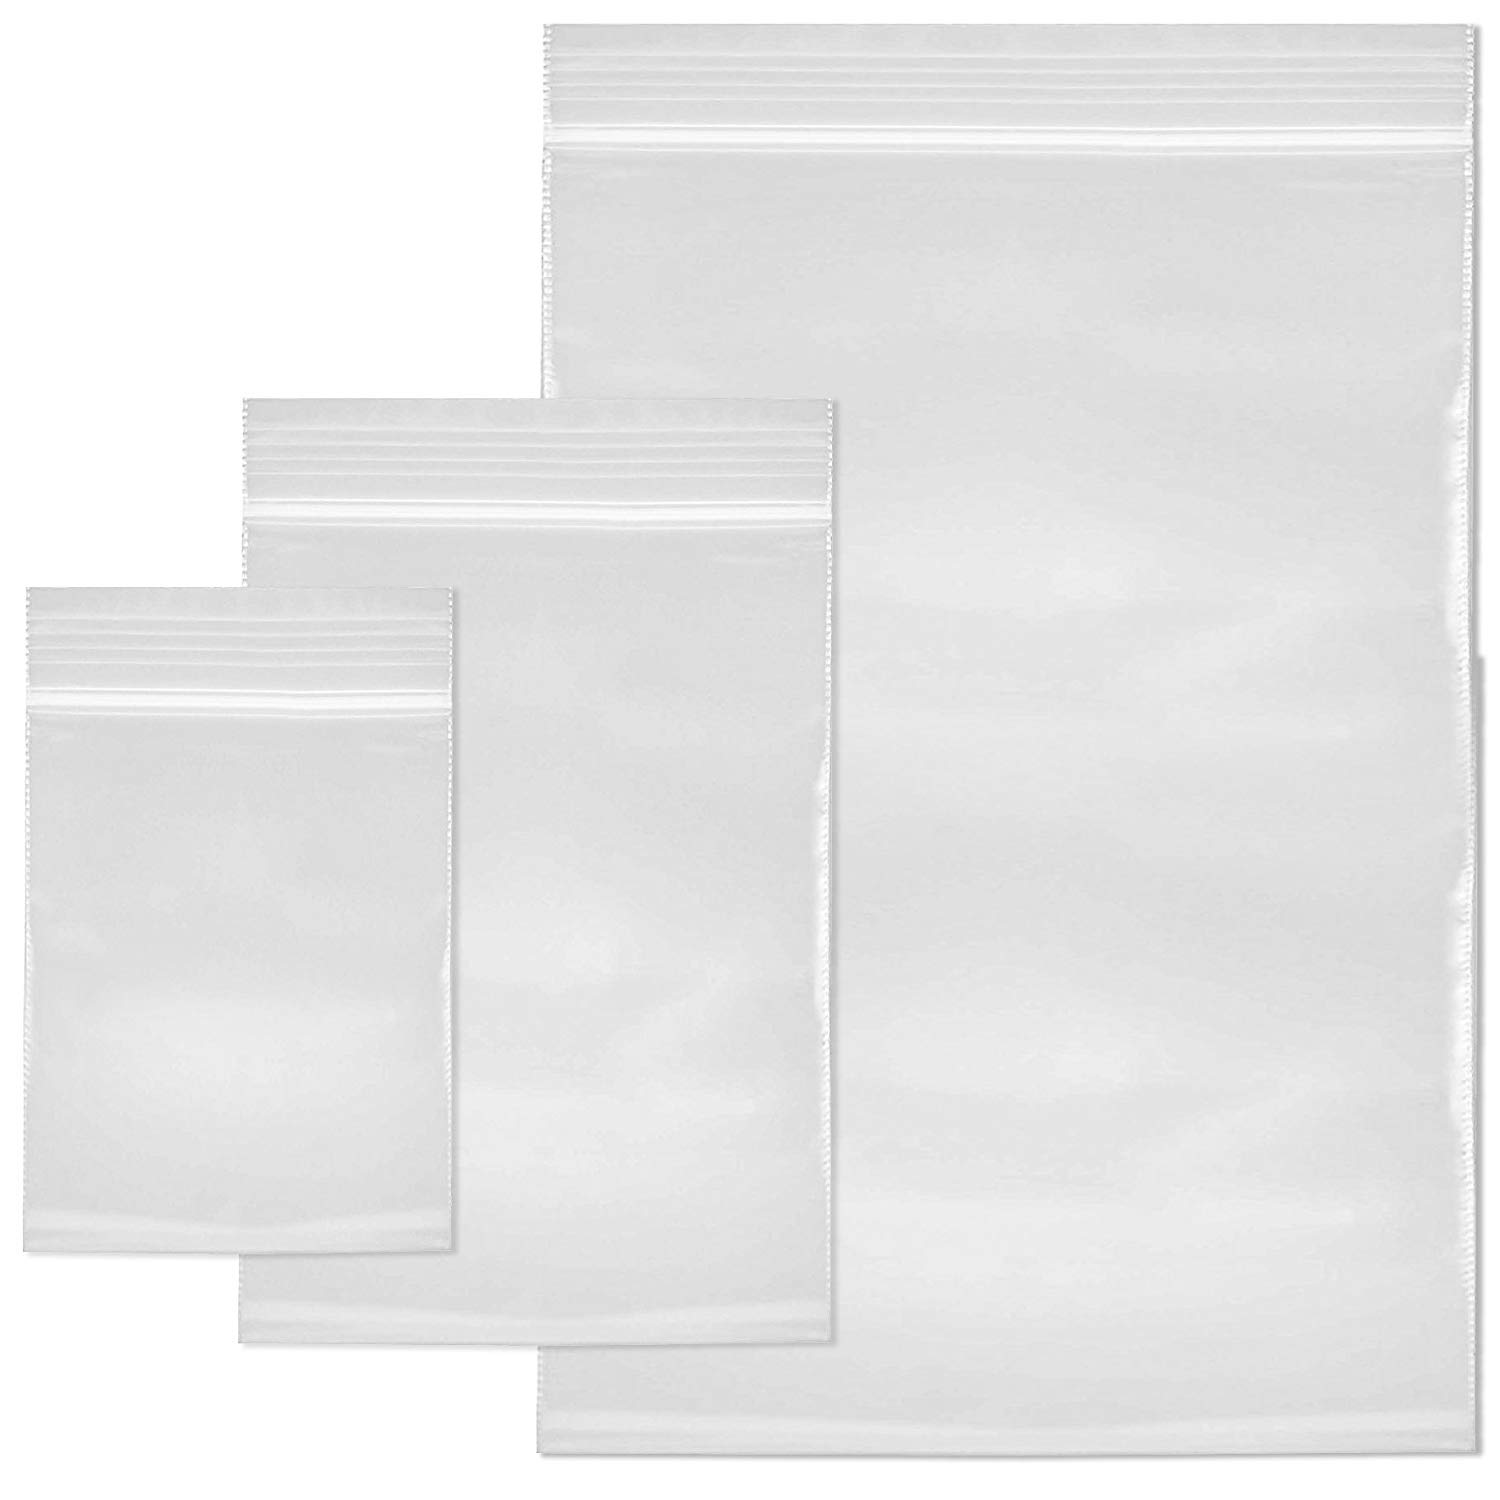 "SteadMax 200 Resealable Clear Plastic Bags, 3 Size Variety Pack (3.5"" x 2"") (5.25"" x 3"") (7.75"" x 5"") Reclosable Plastic Poly Bag, Small Baggies with Zip Lock for Crafts, Jewelry and Business Use"